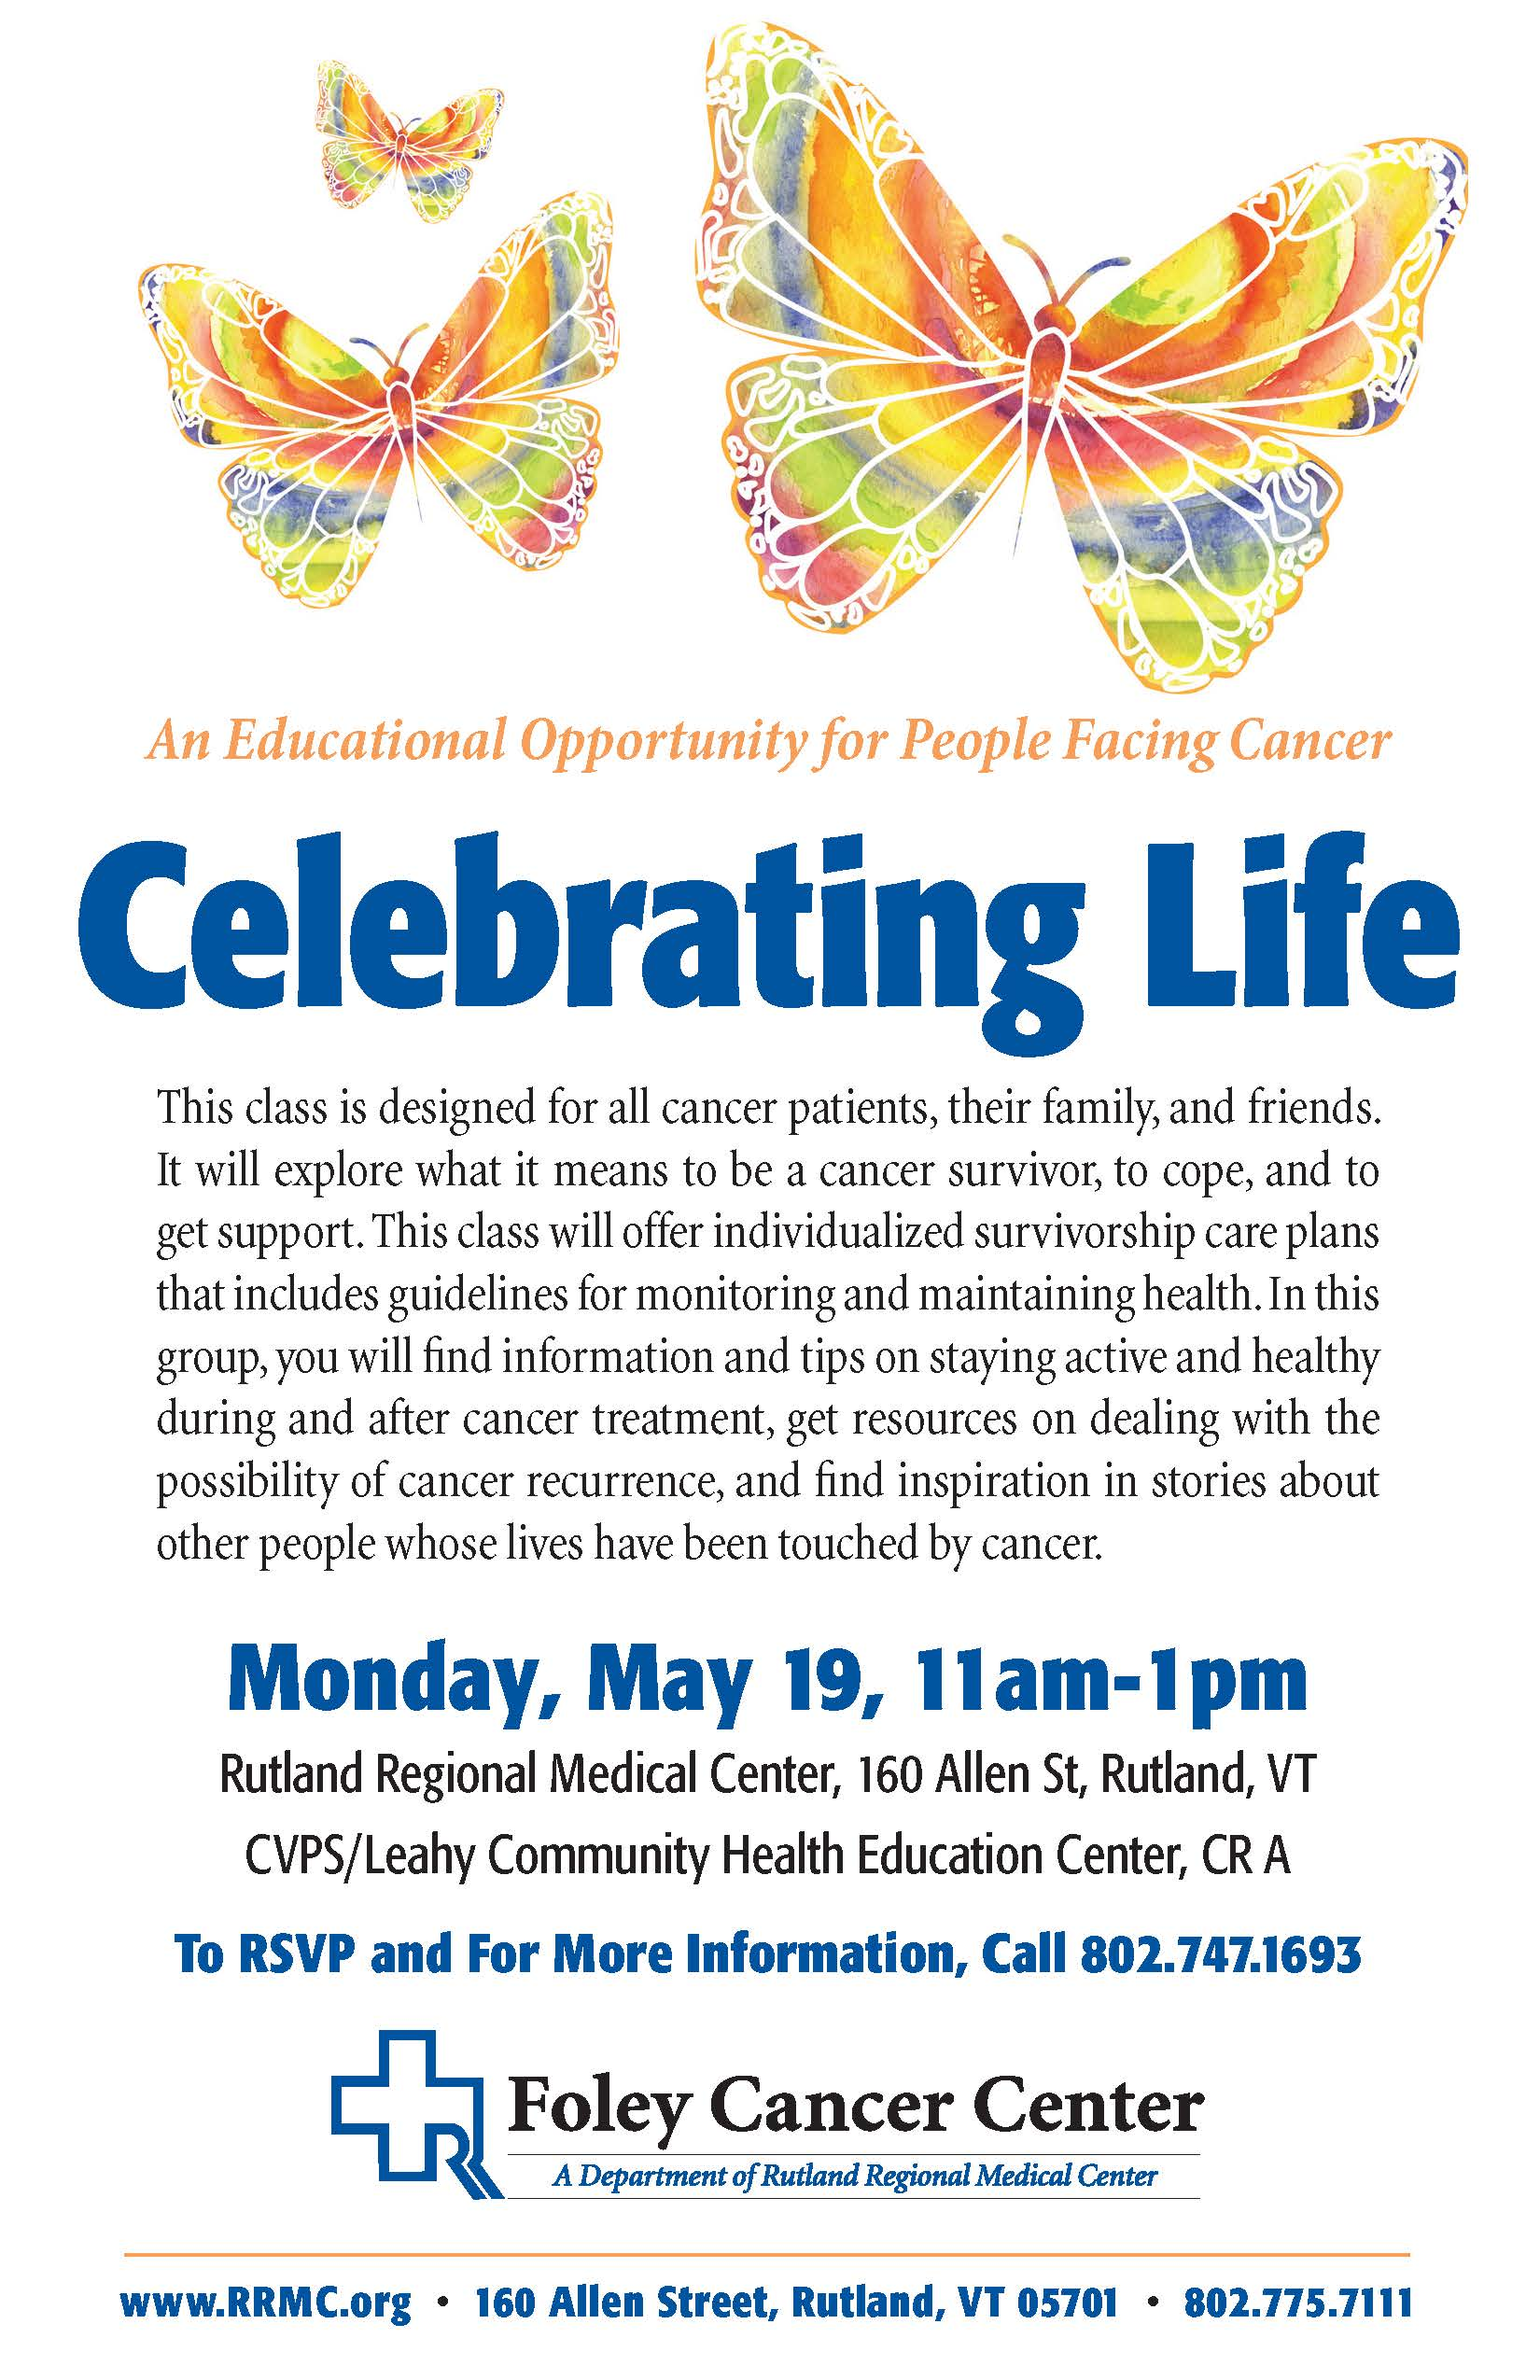 Celebrating Life: An Educational Opportunity for People Facing Cancer